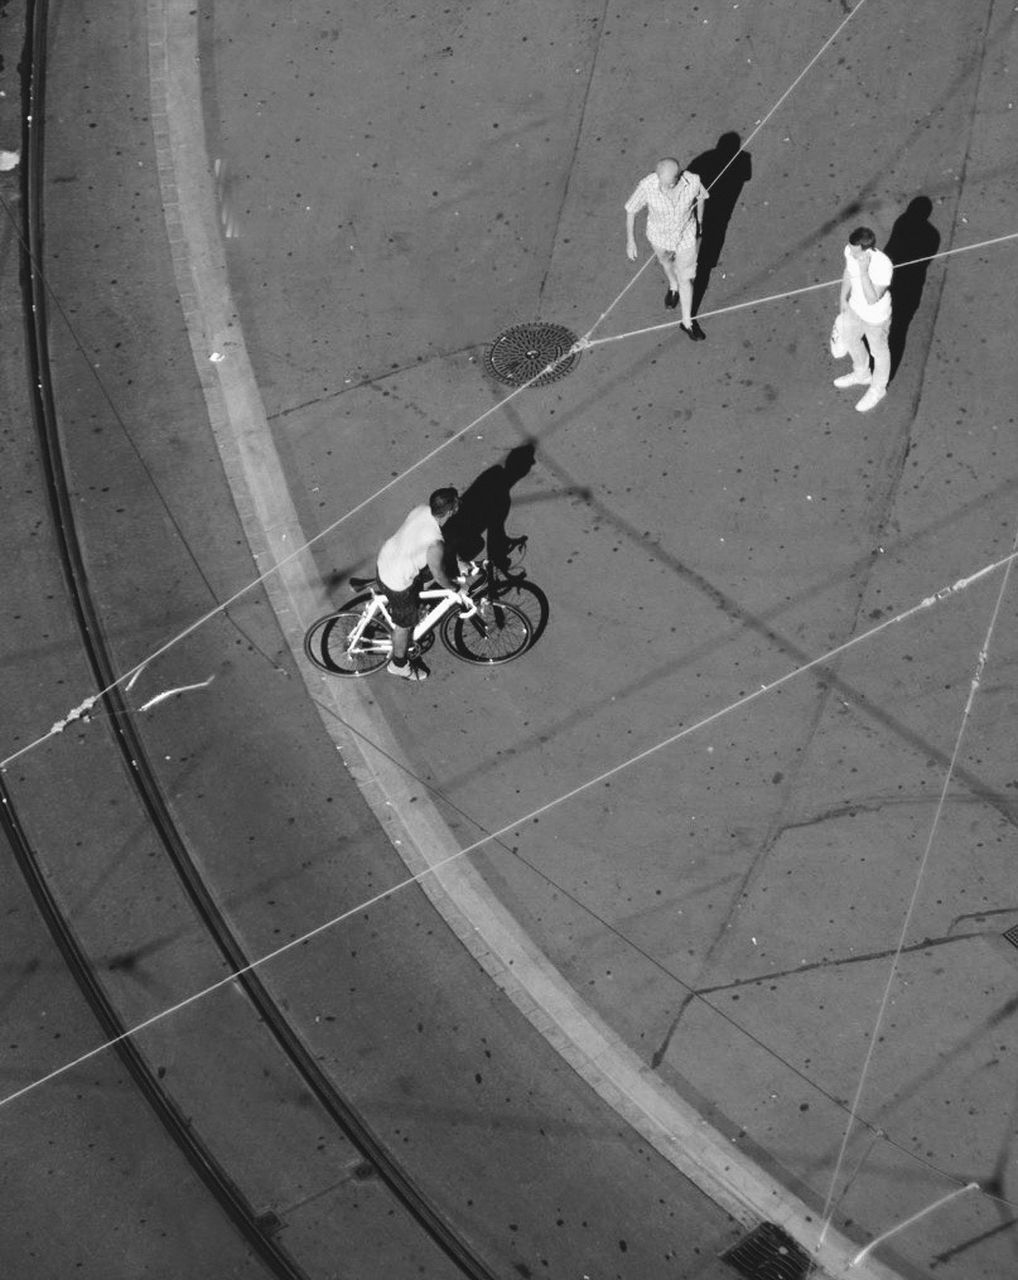 HIGH ANGLE VIEW OF PEOPLE RIDING BICYCLES ON FOOTPATH